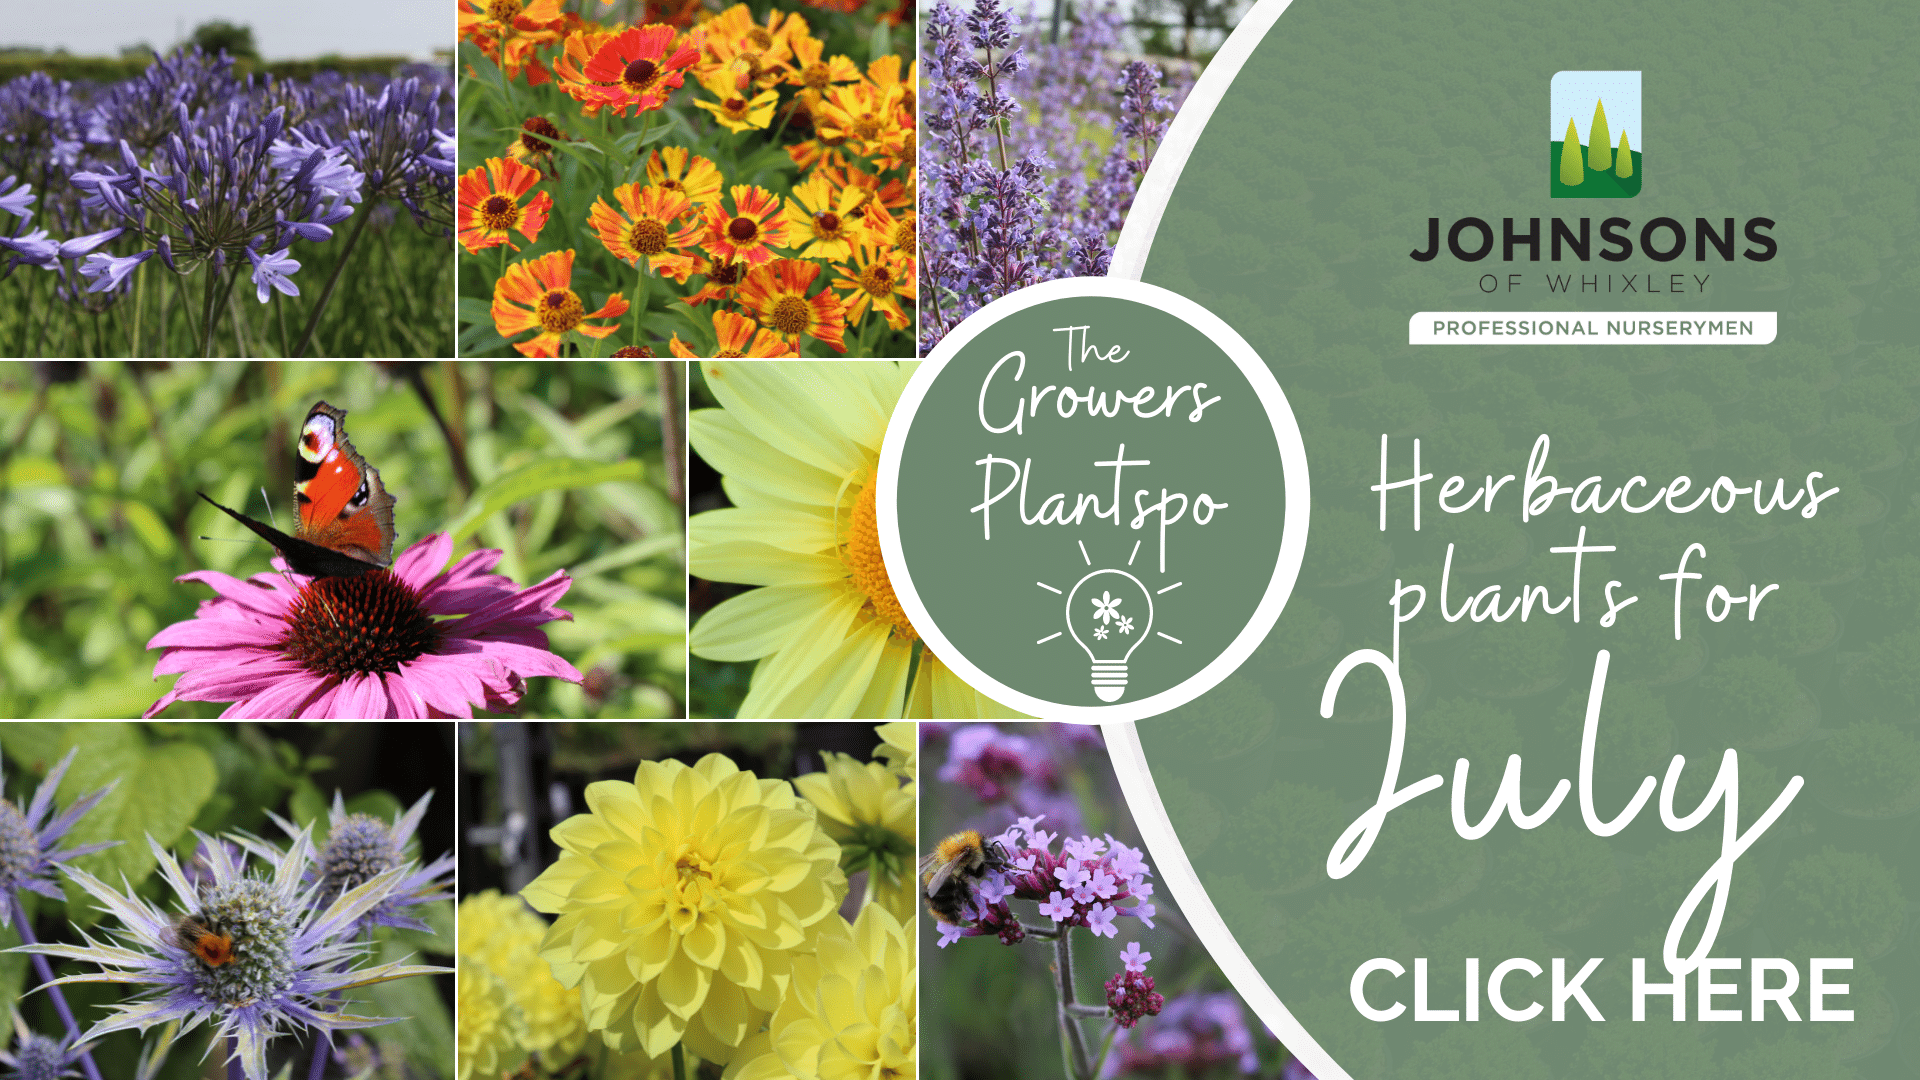 The Growers Plantspo - July Herbaceous